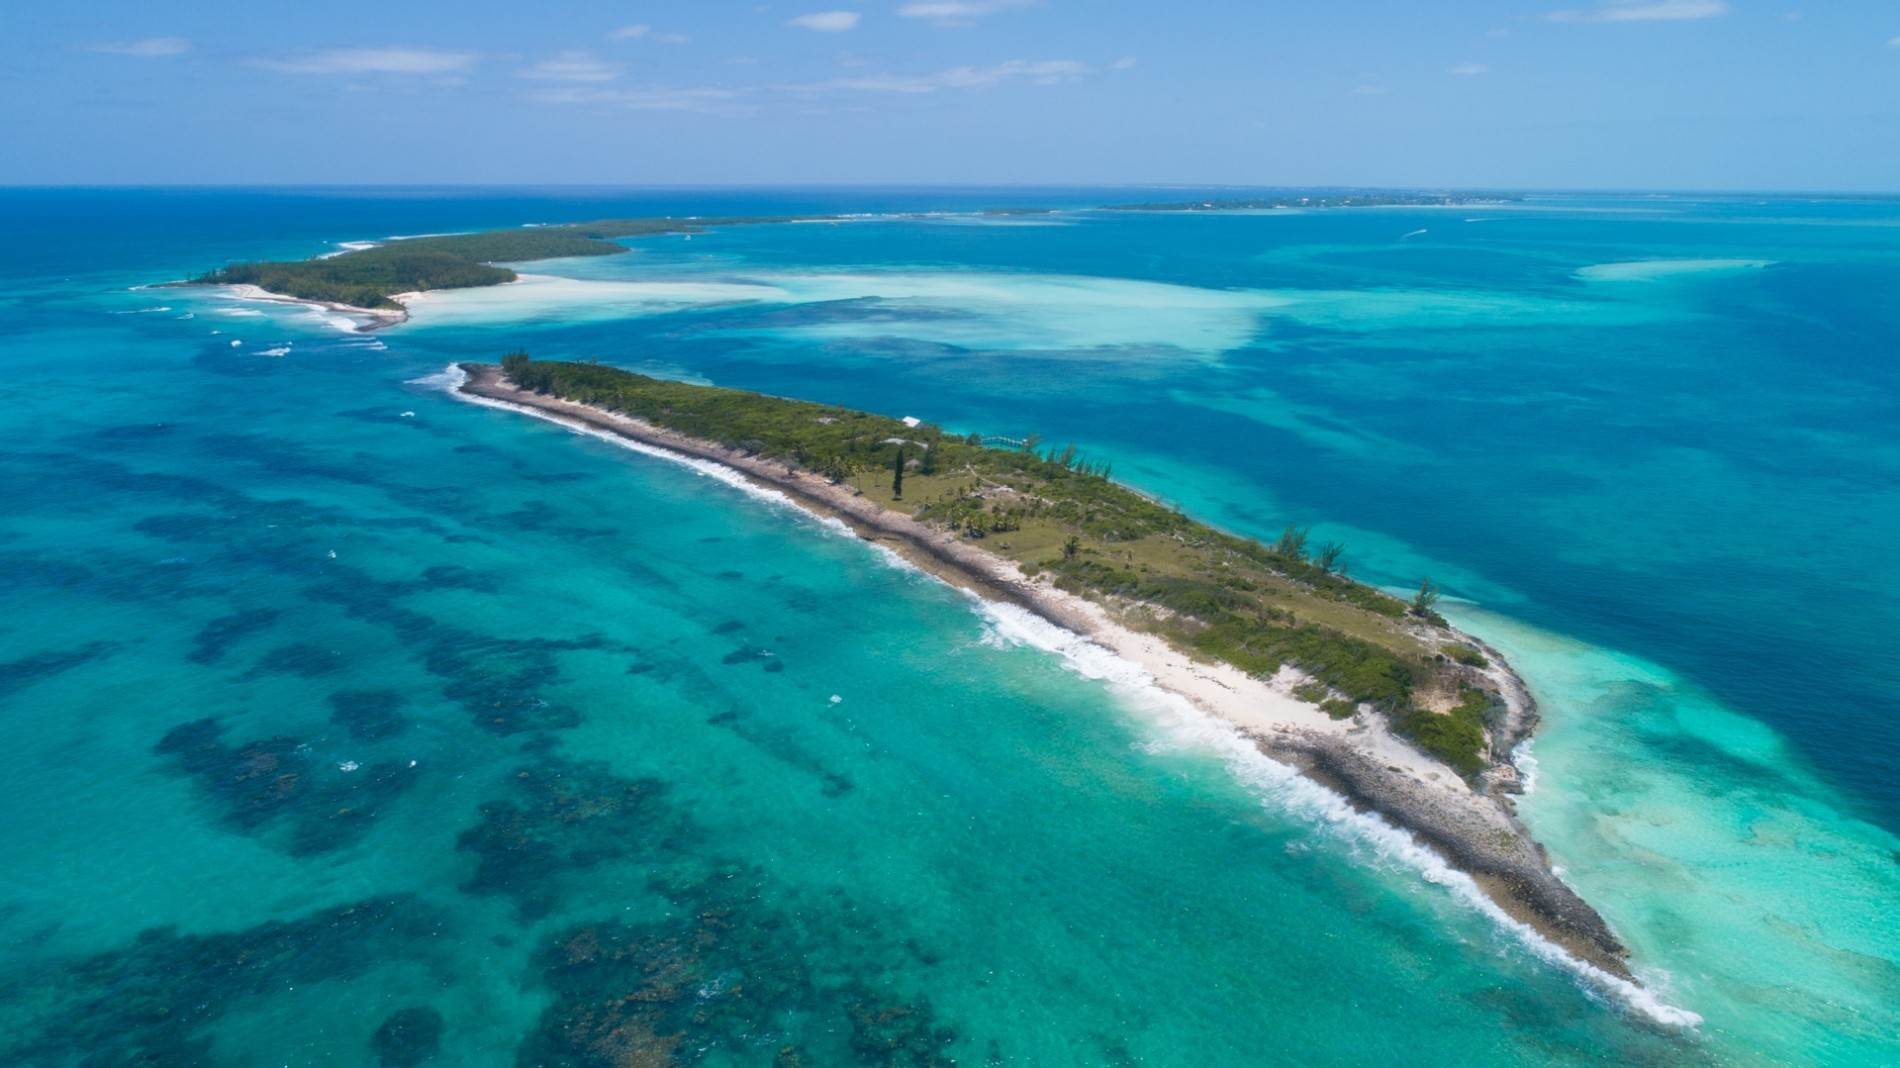 Private Island for Sale at Pierre Island, A Perfect Private Retreat Island Near Harbour Island - MLS 40806 Harbour Island, Bahamas